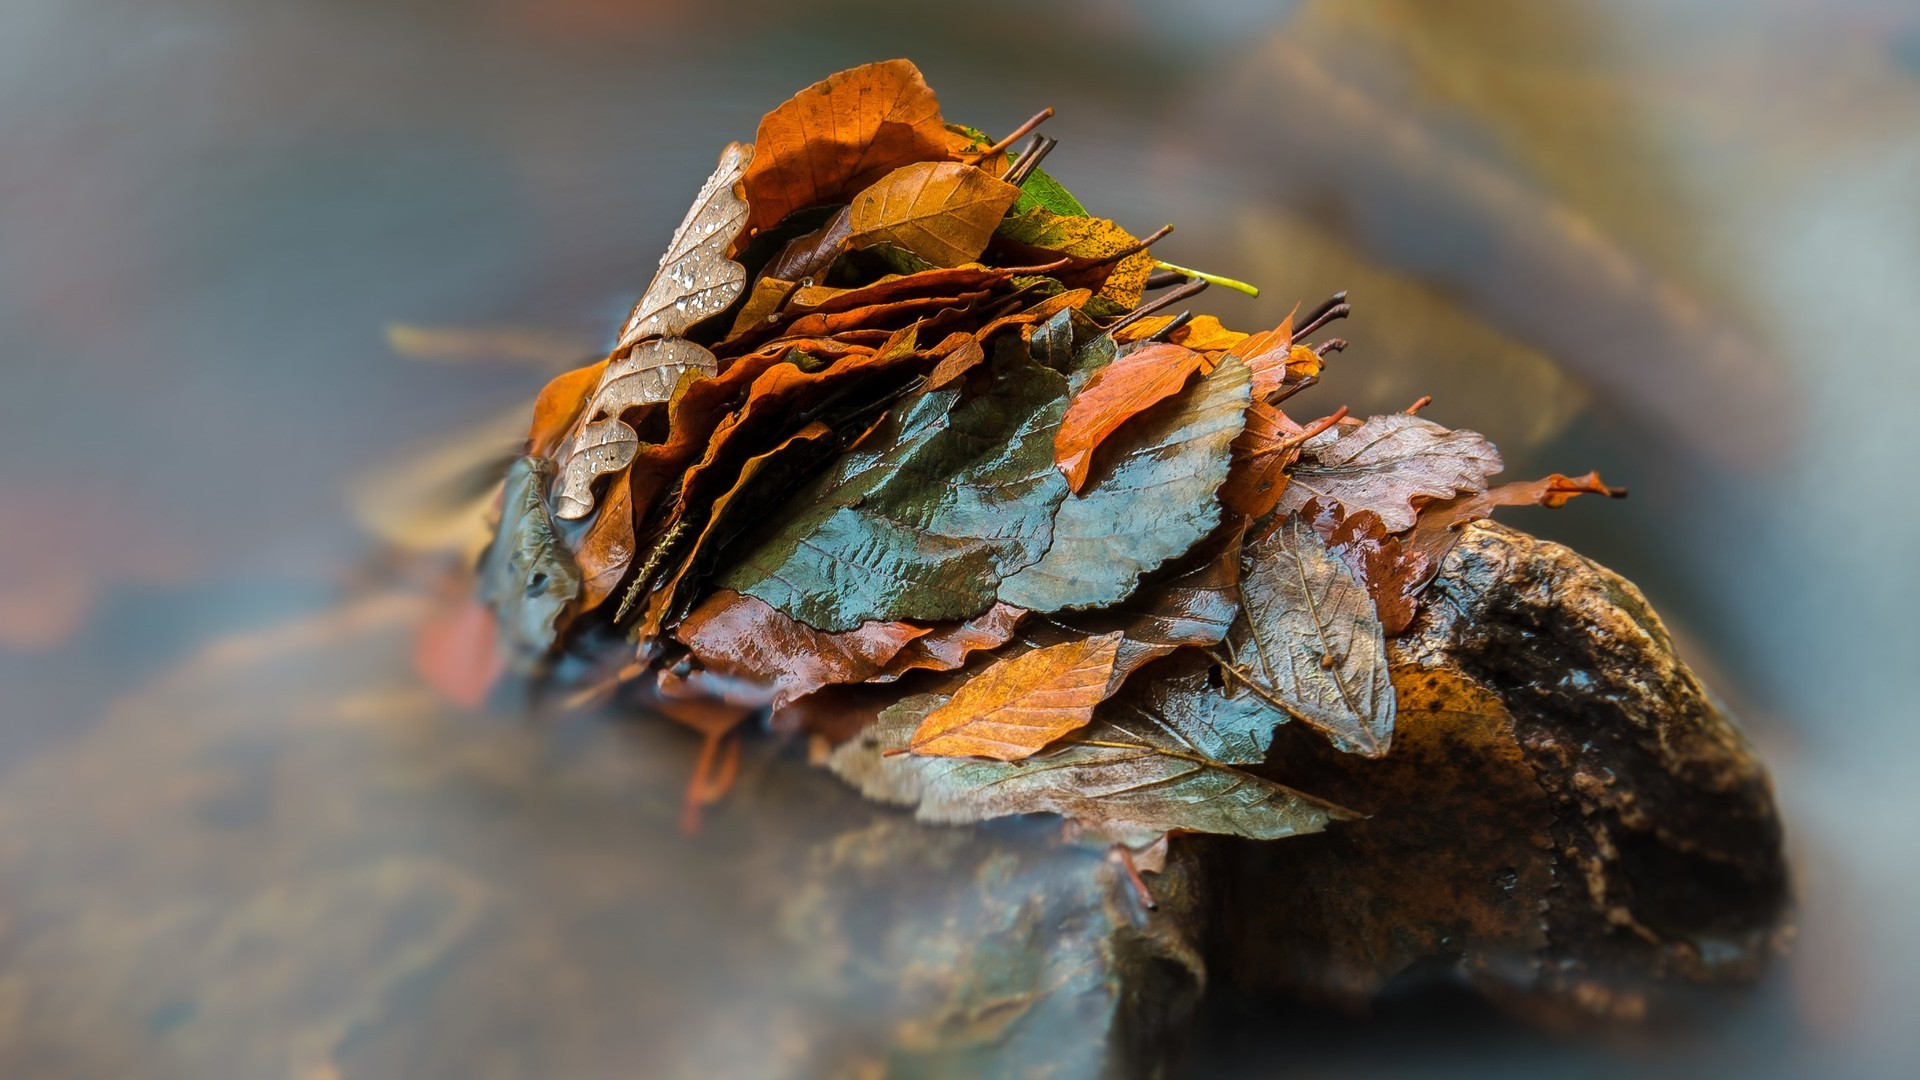 Full Screen Desktop Fall Leaves Wallpaper Nature Leaves Fall Closeup Depth Of Field Water Drops